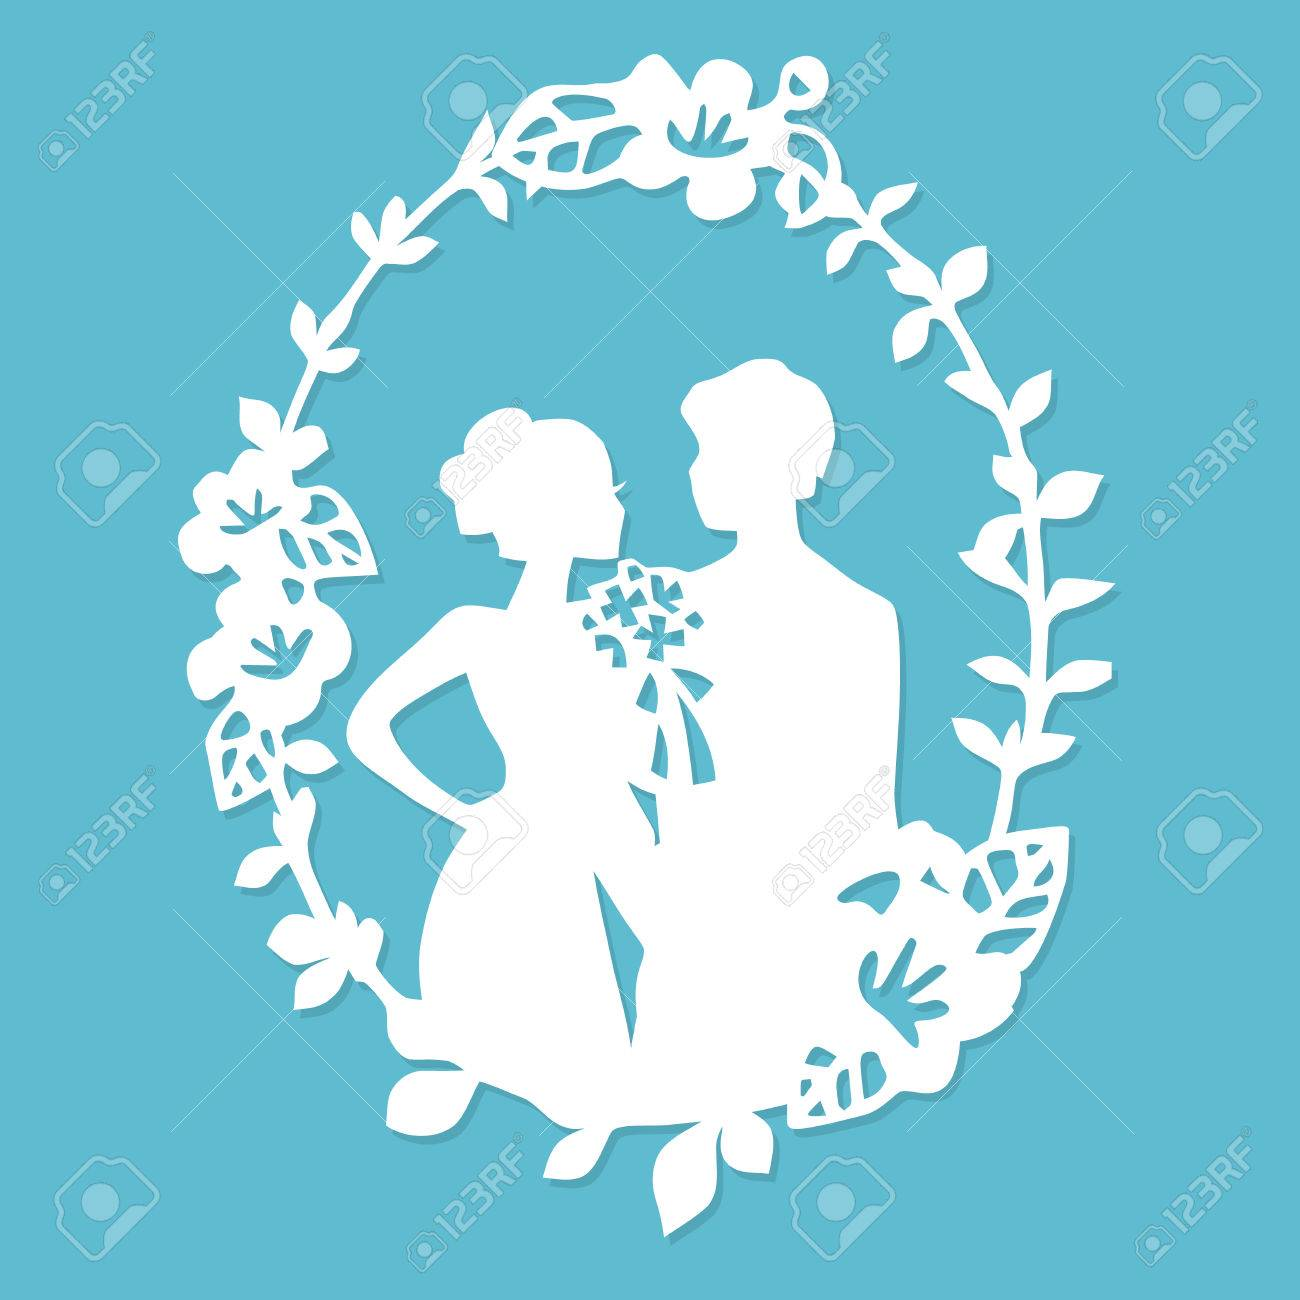 A vector illustration of vintage silhouette wedding groom bride wreath frame in paper cut style. - 75533480